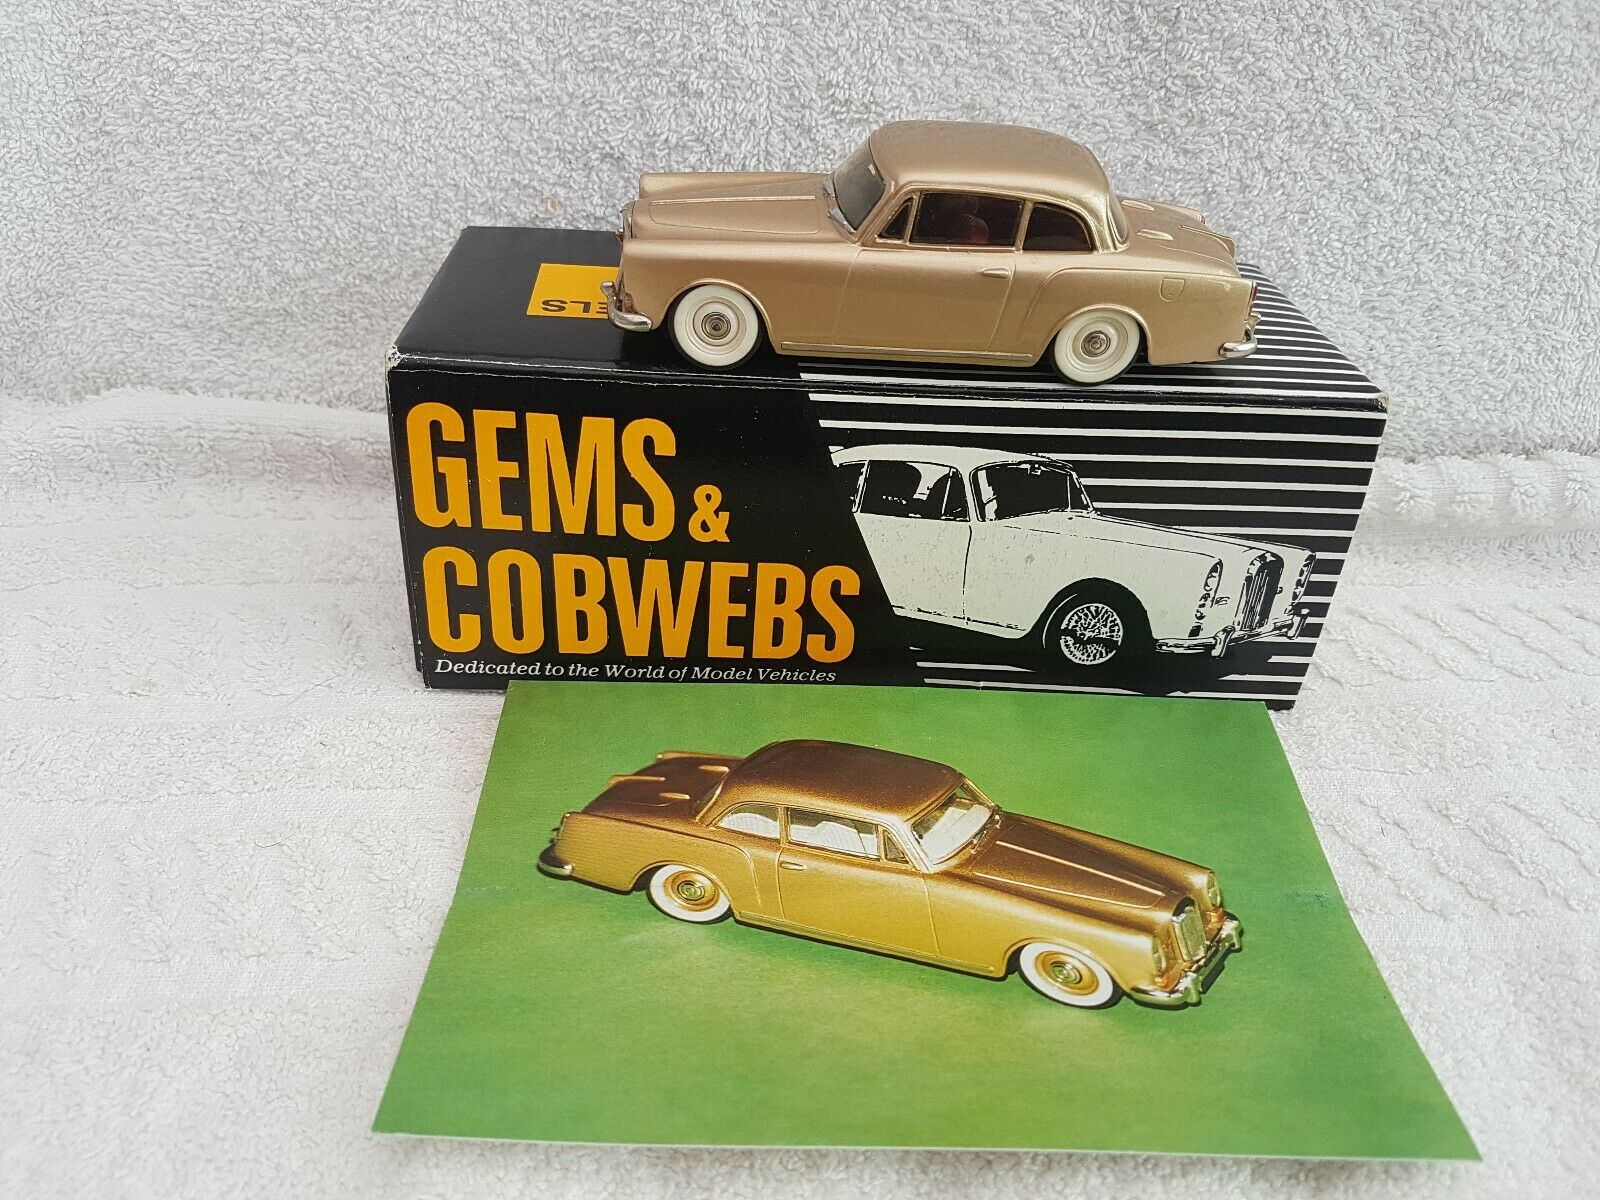 Gems And Cobwebs 1 43 G.C.3 Alvis TF21 Saloon 1966 gold